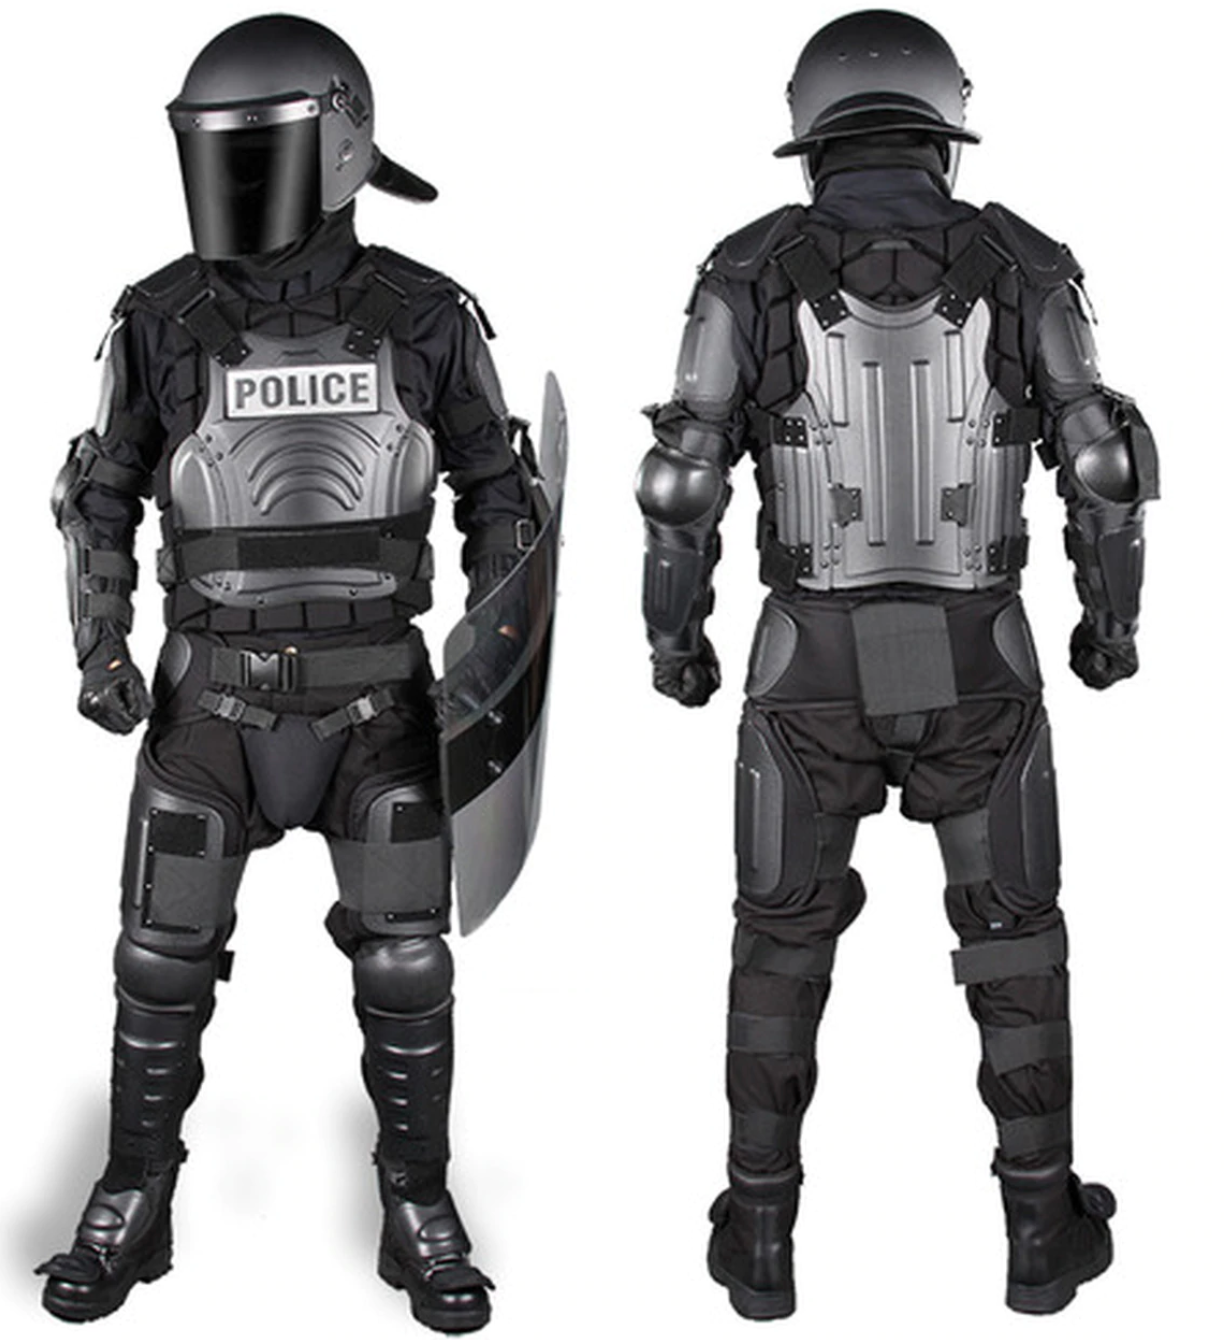 DAMASCUS FLEXFORCE RIOT CONTROL SUIT – FX1-MED